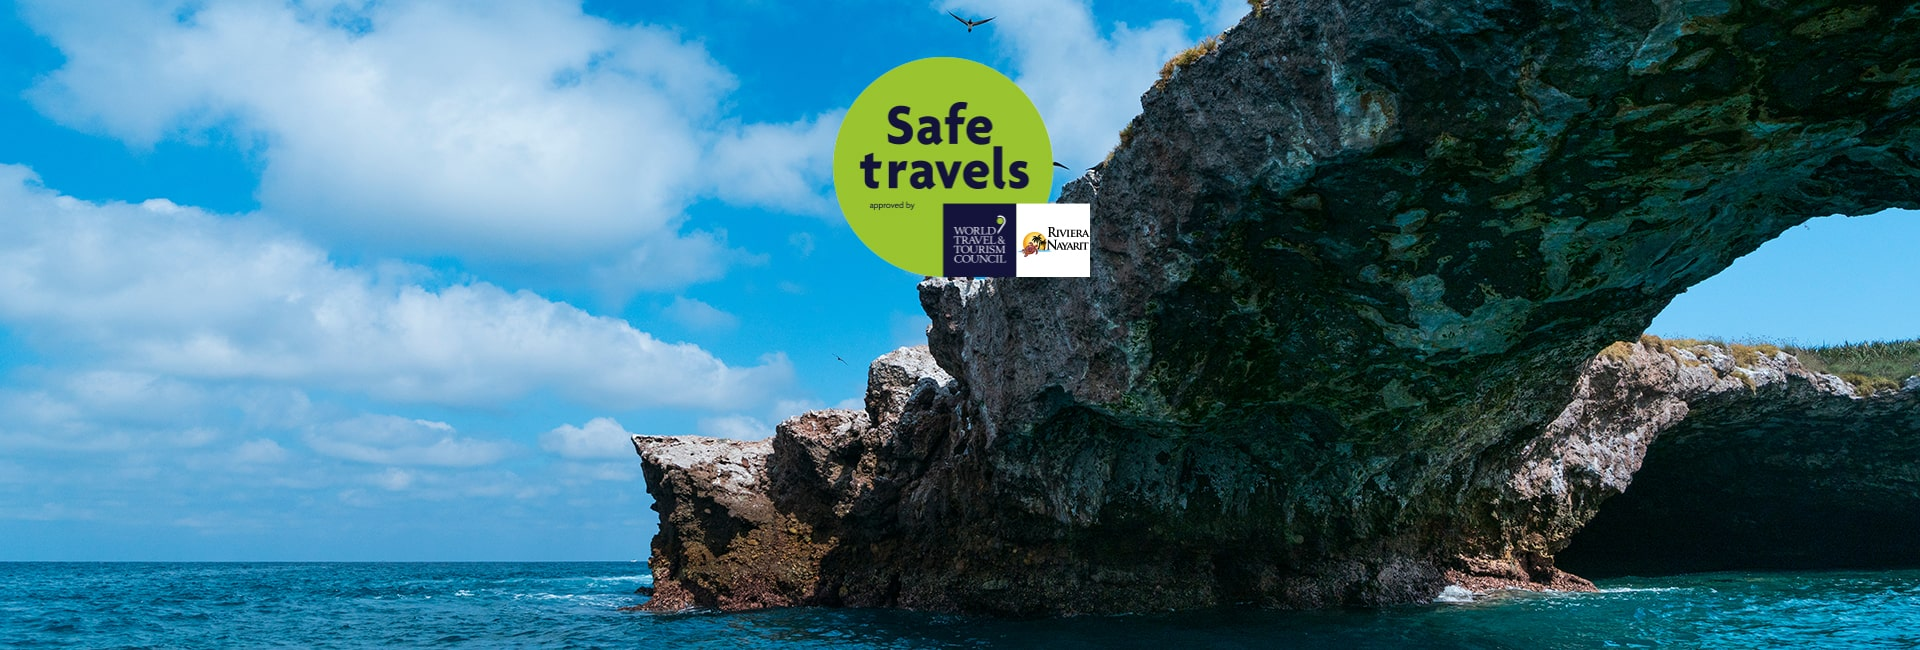 Riviera nayarit received the safe travel stamp from wttc